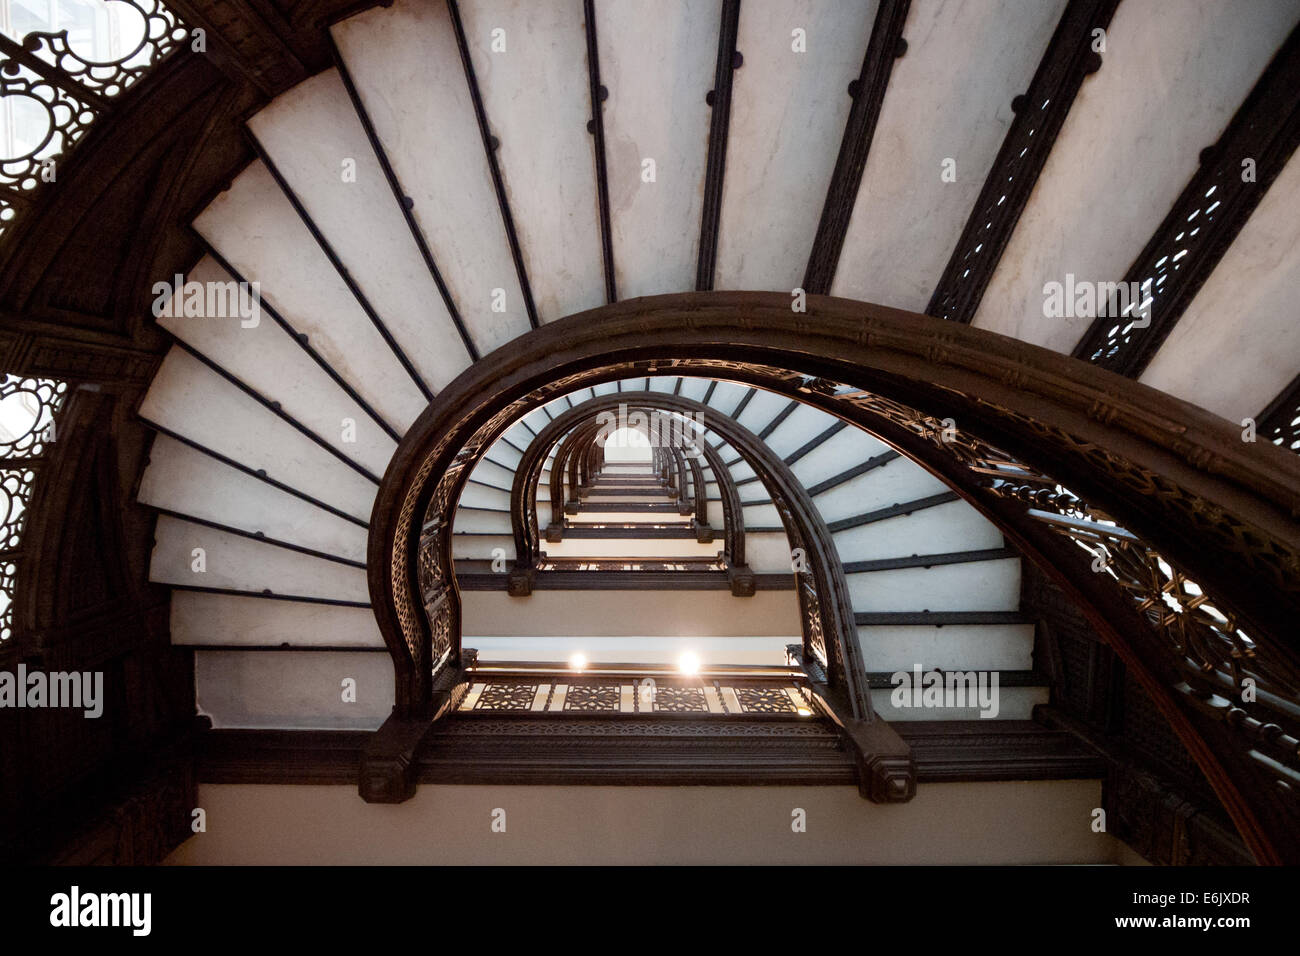 The Brilliant Oriel Staircase At The Rookery, One Of The Most Historically  Significant Buildings In